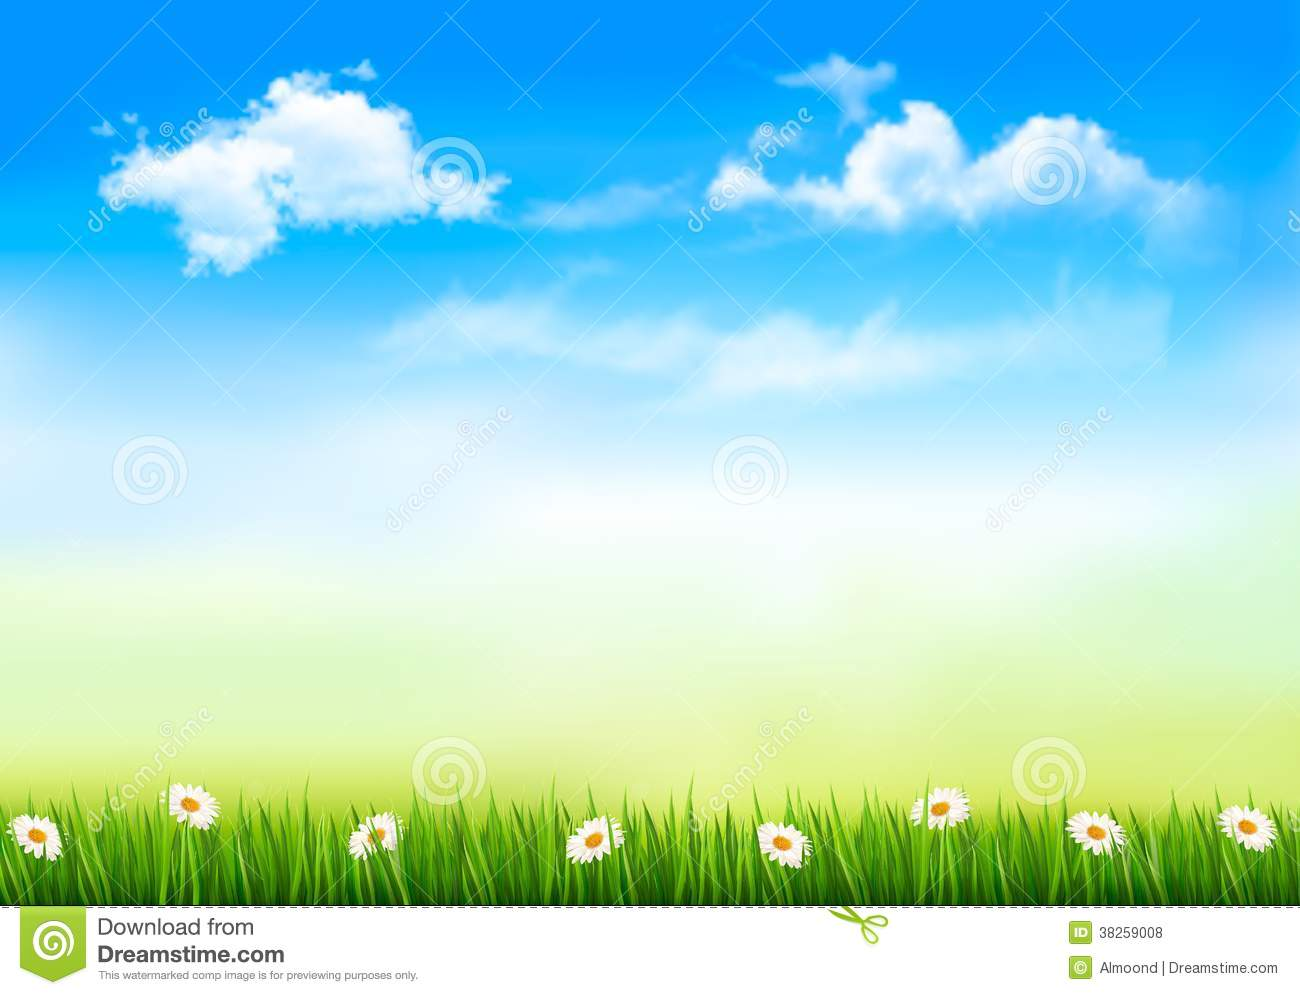 summer nature background with green grass and sky royalty free stock photos image 38259008 sun rays vector free sun rays vector images